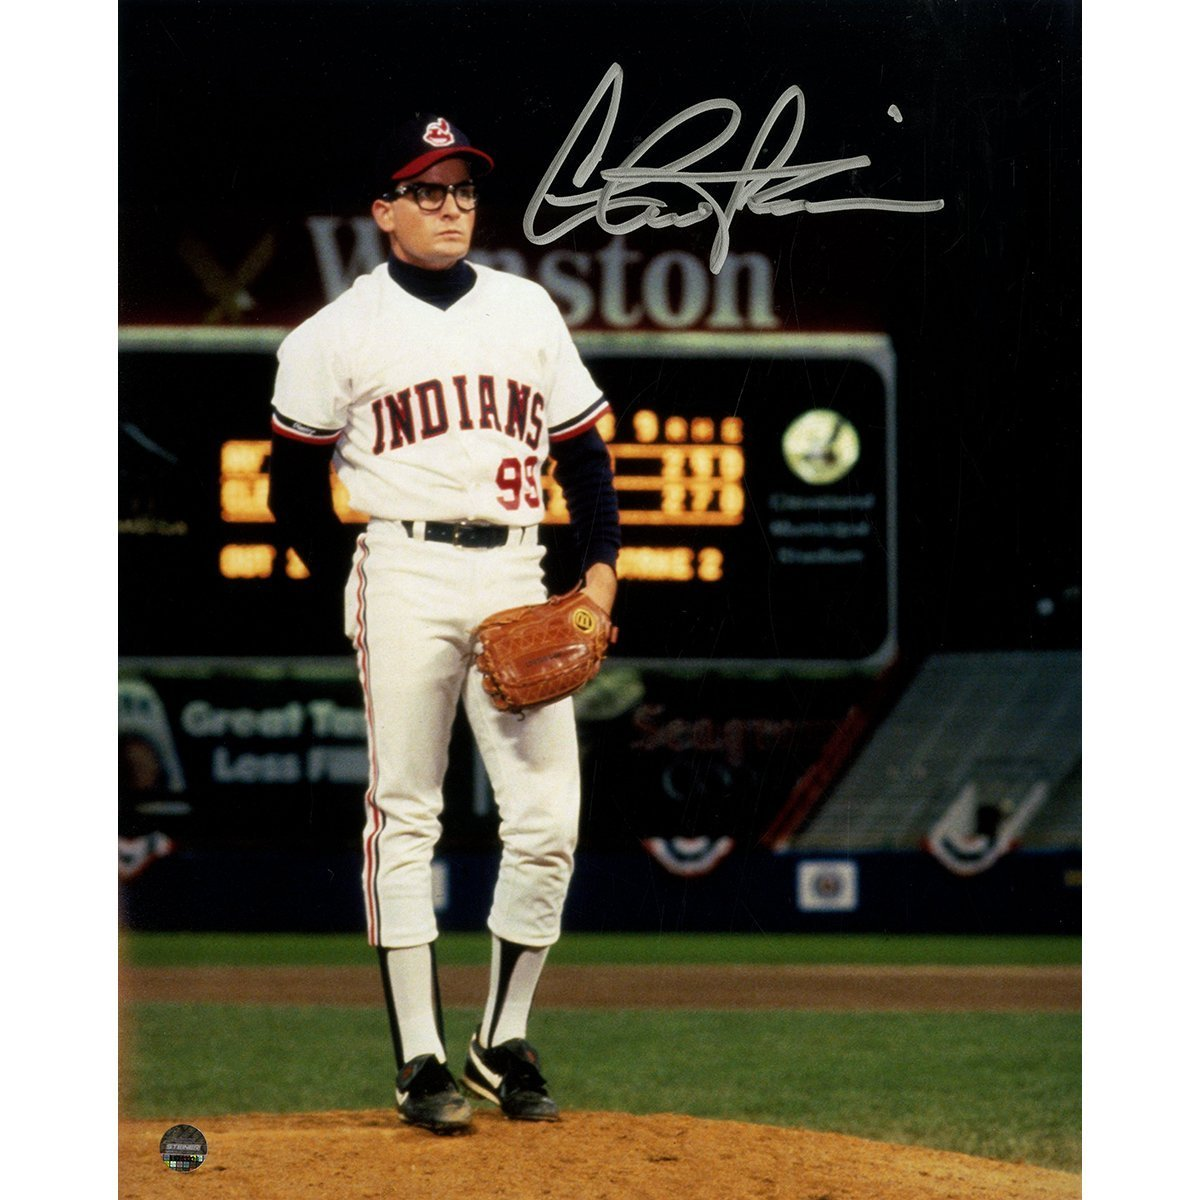 8dcc82b72 Charlie Sheen Signed Major League 8x10 Photo at Amazon's Sports  Collectibles Store